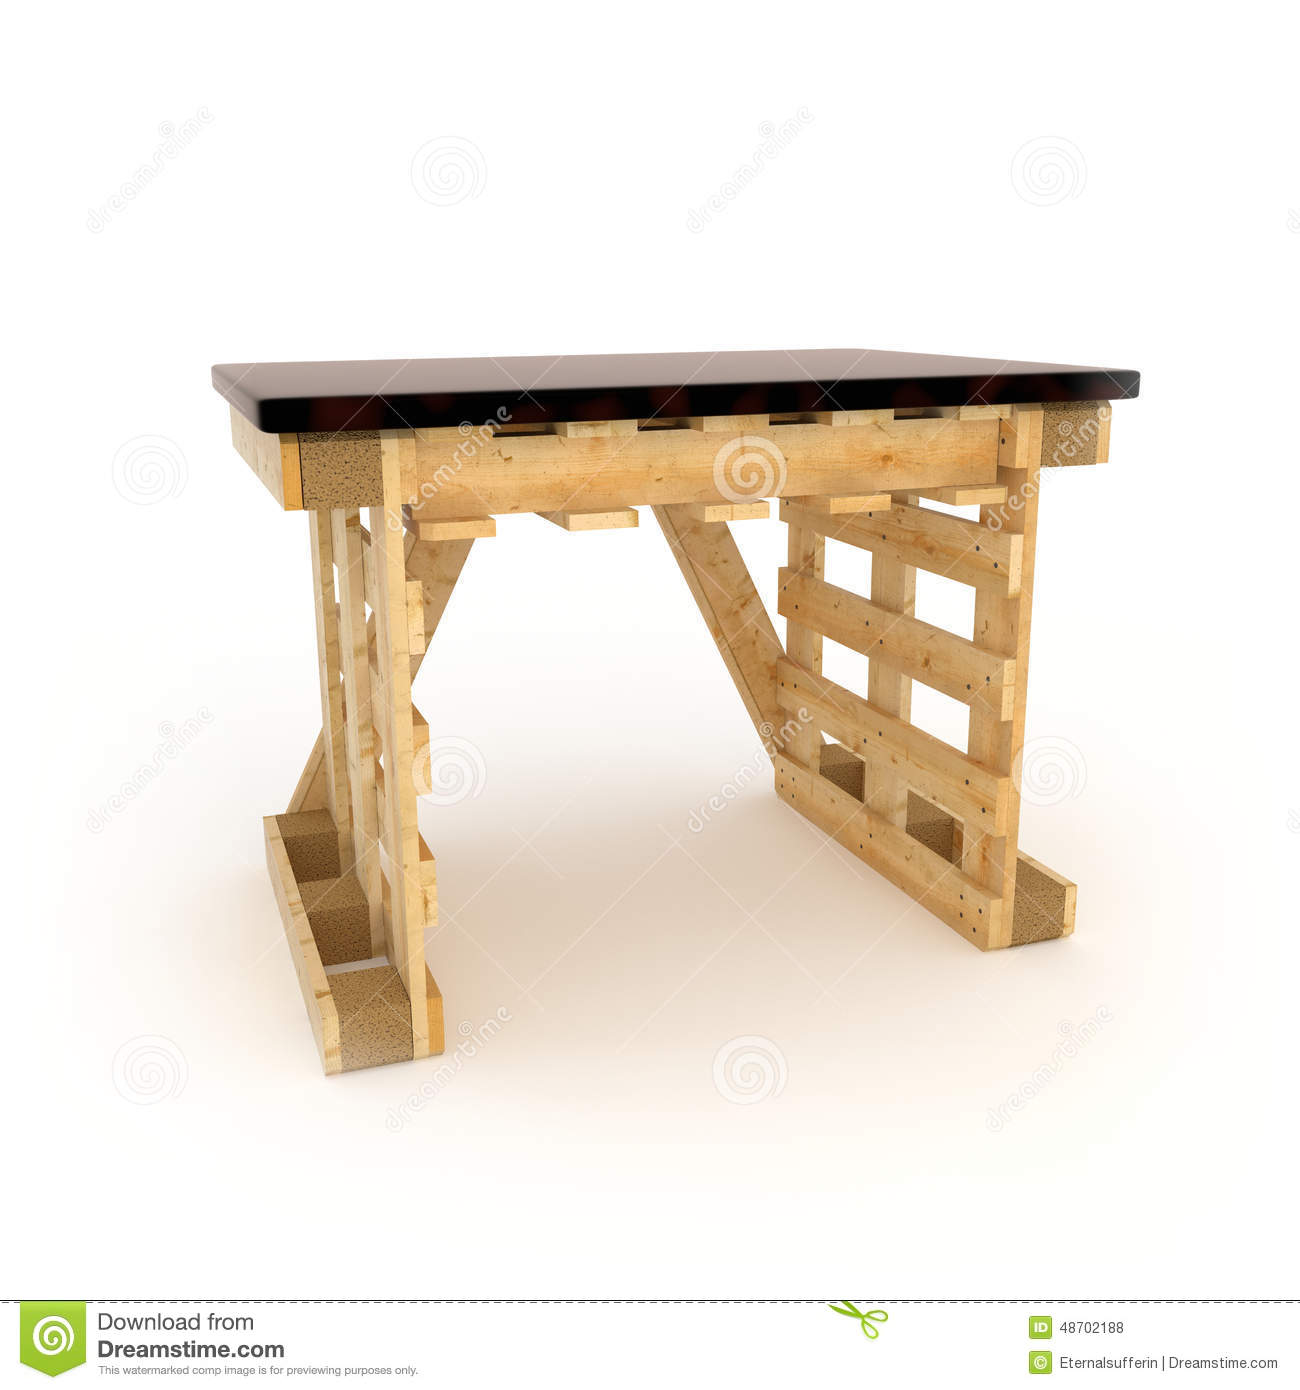 Very Impressive portraiture of Furniture Made With Wooden Pallets Stock Photo Image: 48702188 with #84A526 color and 1300x1390 pixels